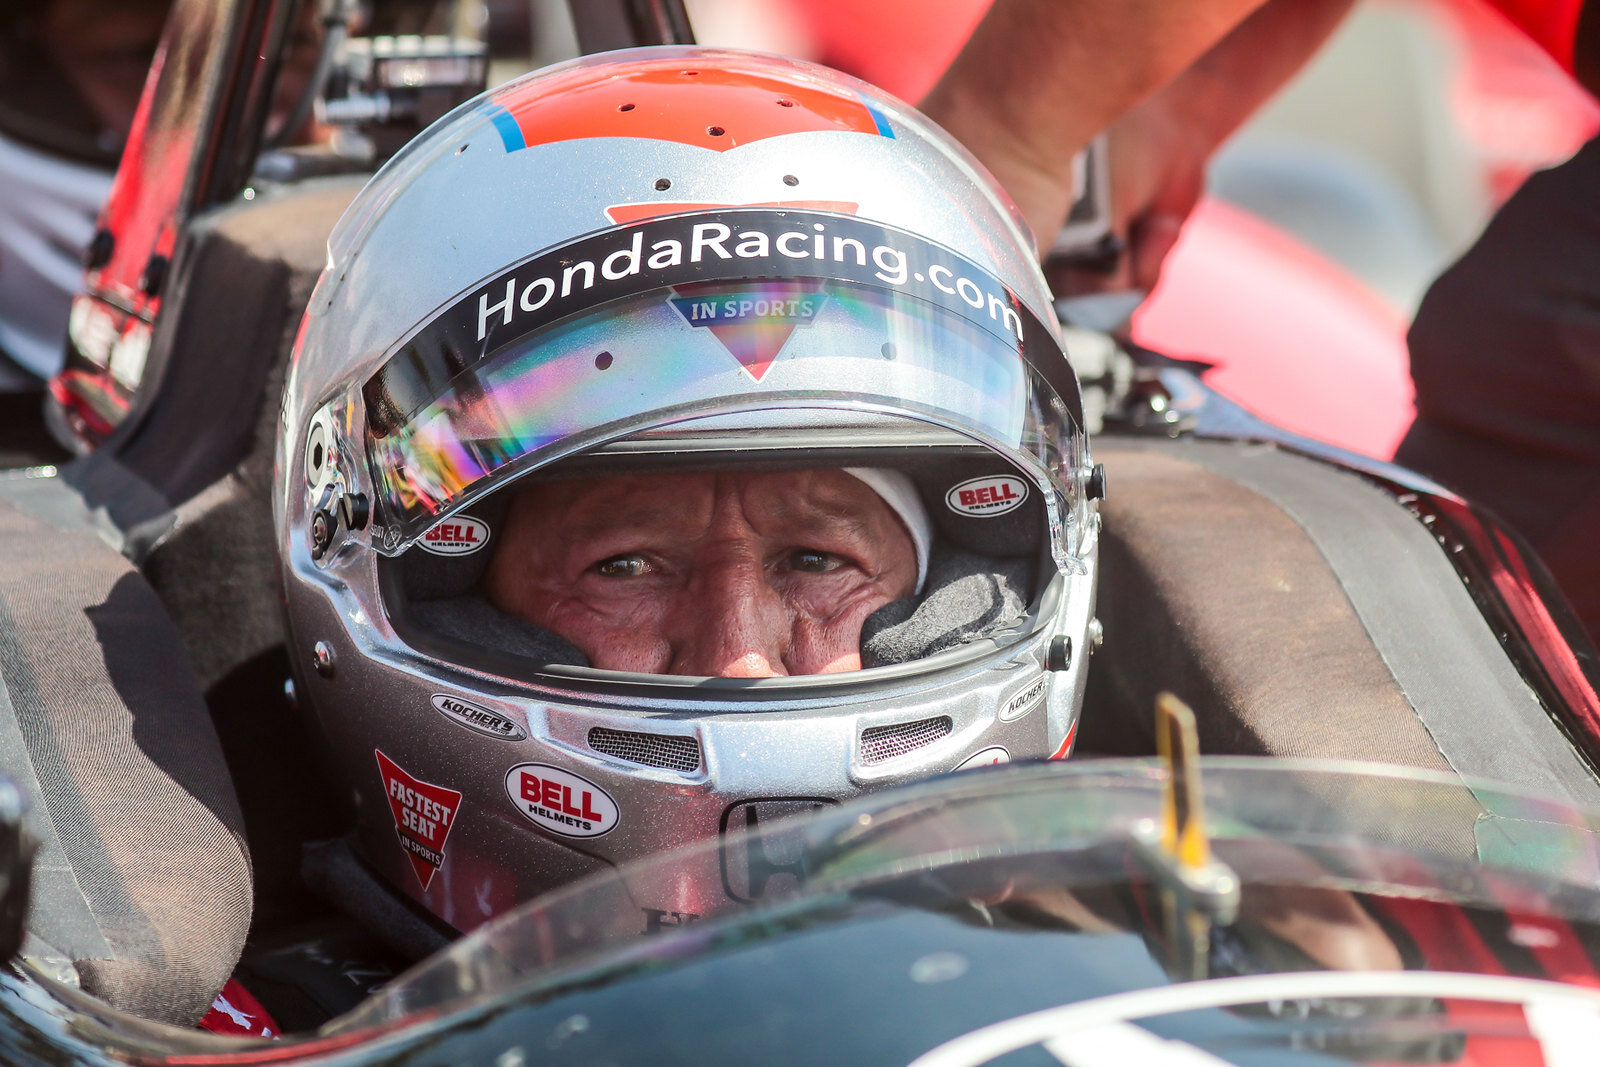 Legend Mario Andretti in the two seater IndyCar.